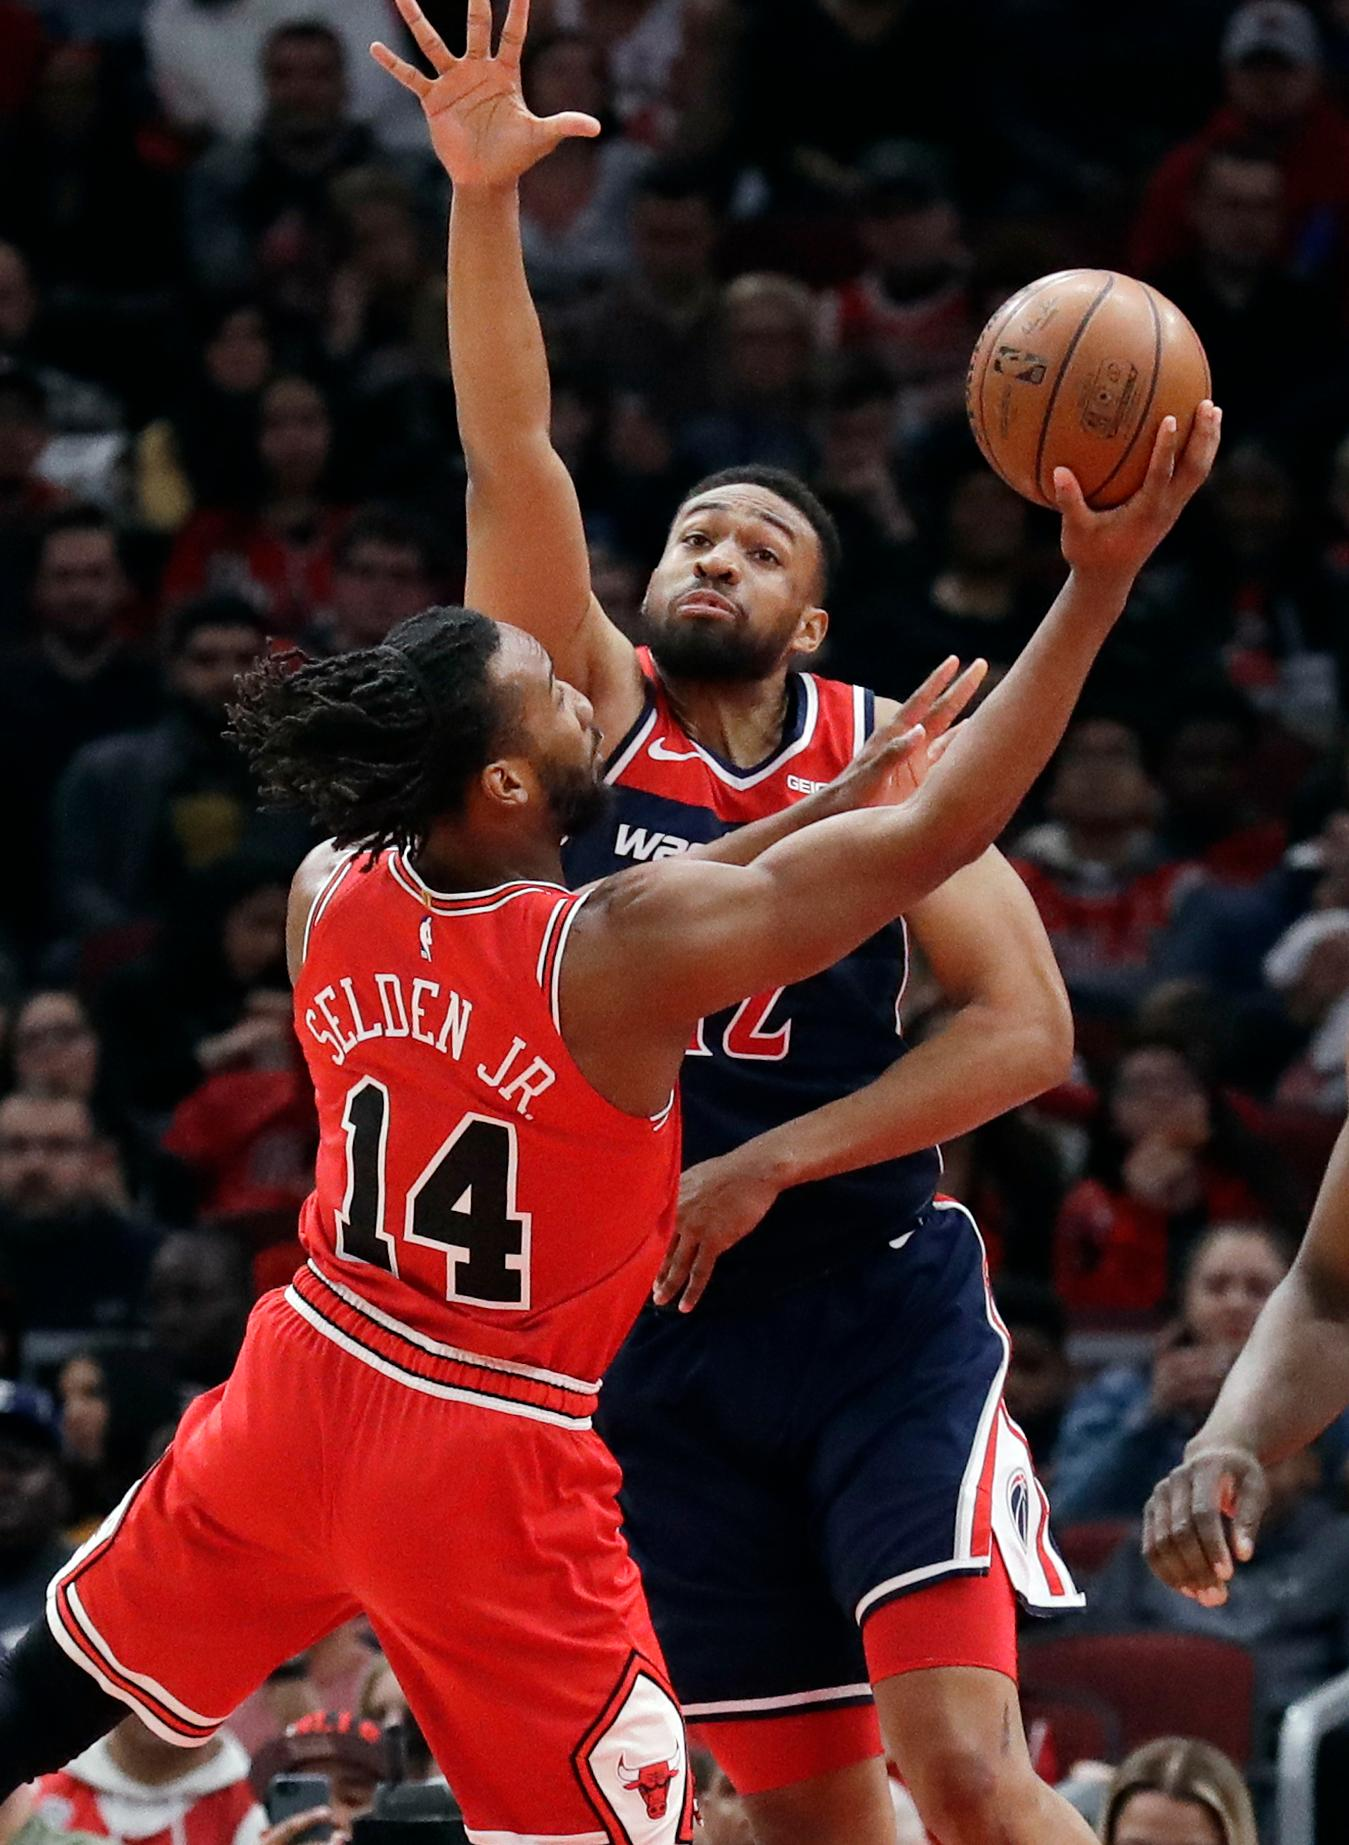 Washington Wizards forward Jabari Parker, right, guards Chicago Bulls' Wayne Selden Jr. during the first half of an NBA basketball game Wednesday, March 20, 2019, in Chicago. (AP Photo/Nam Y. Huh)